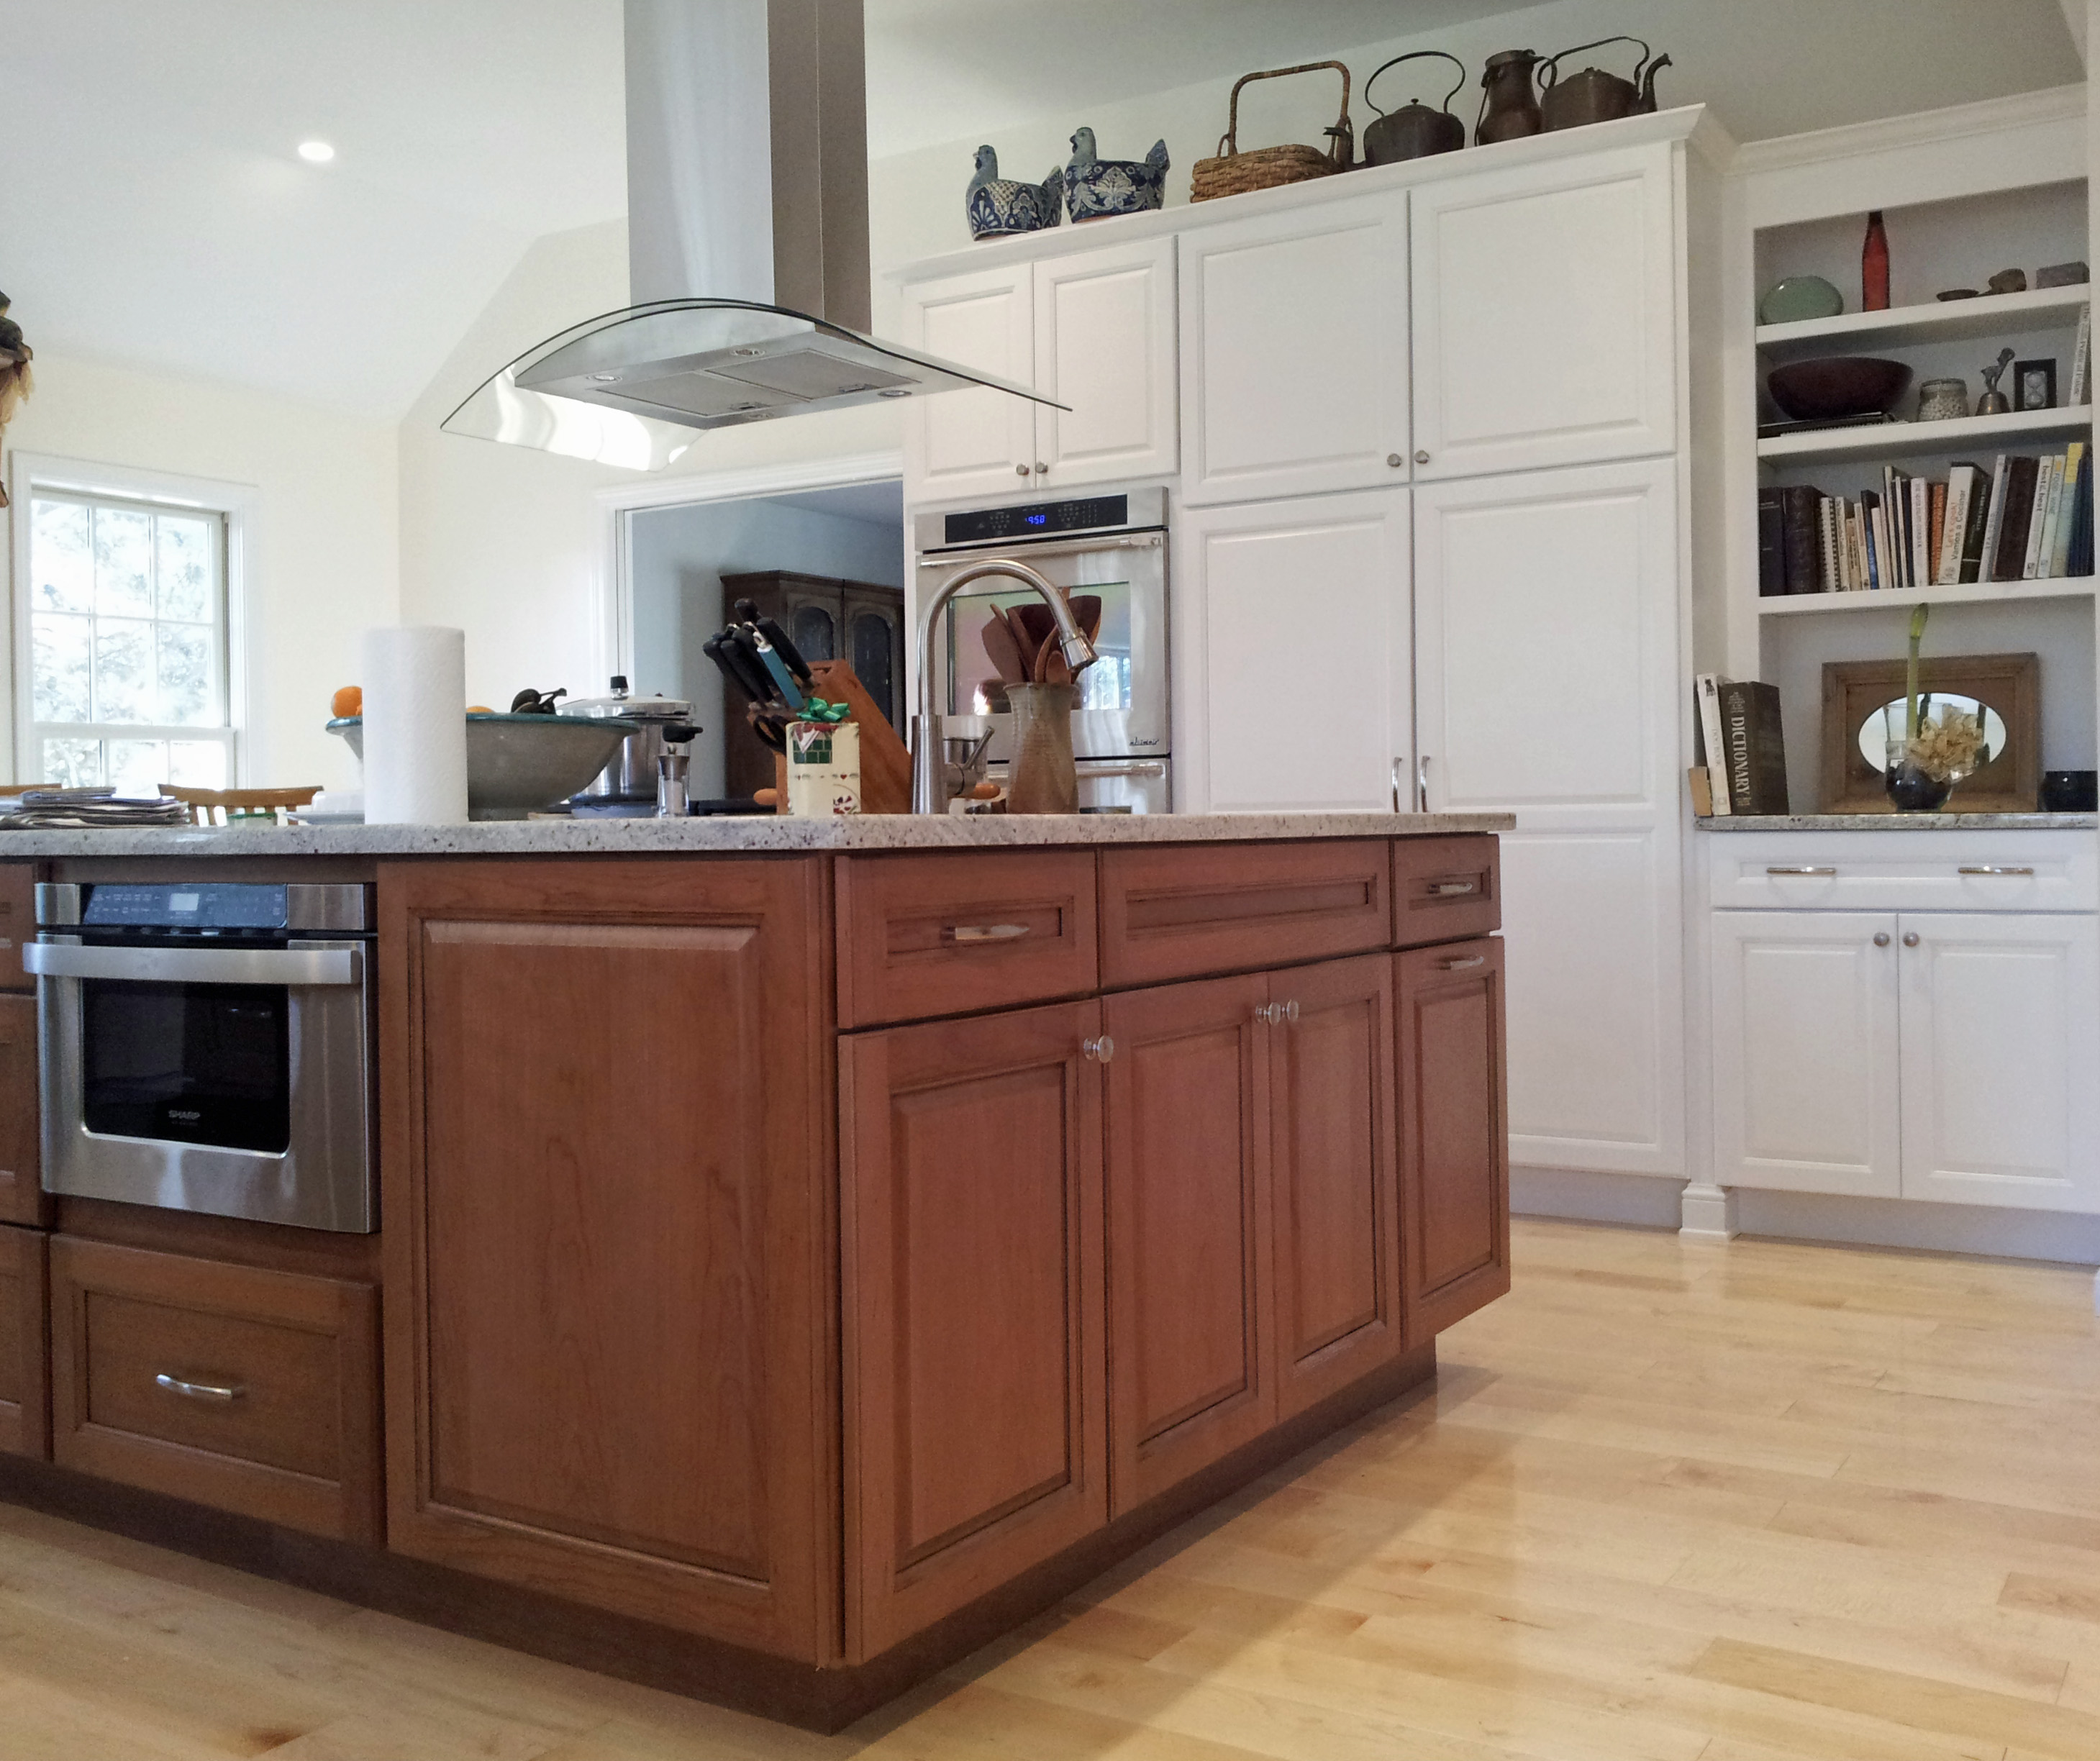 Kitchen cabinets eastern ct -  Beautiful Stained Full Overlay Island Cabinetry Mixed With Painted Perimeter Cabinetry